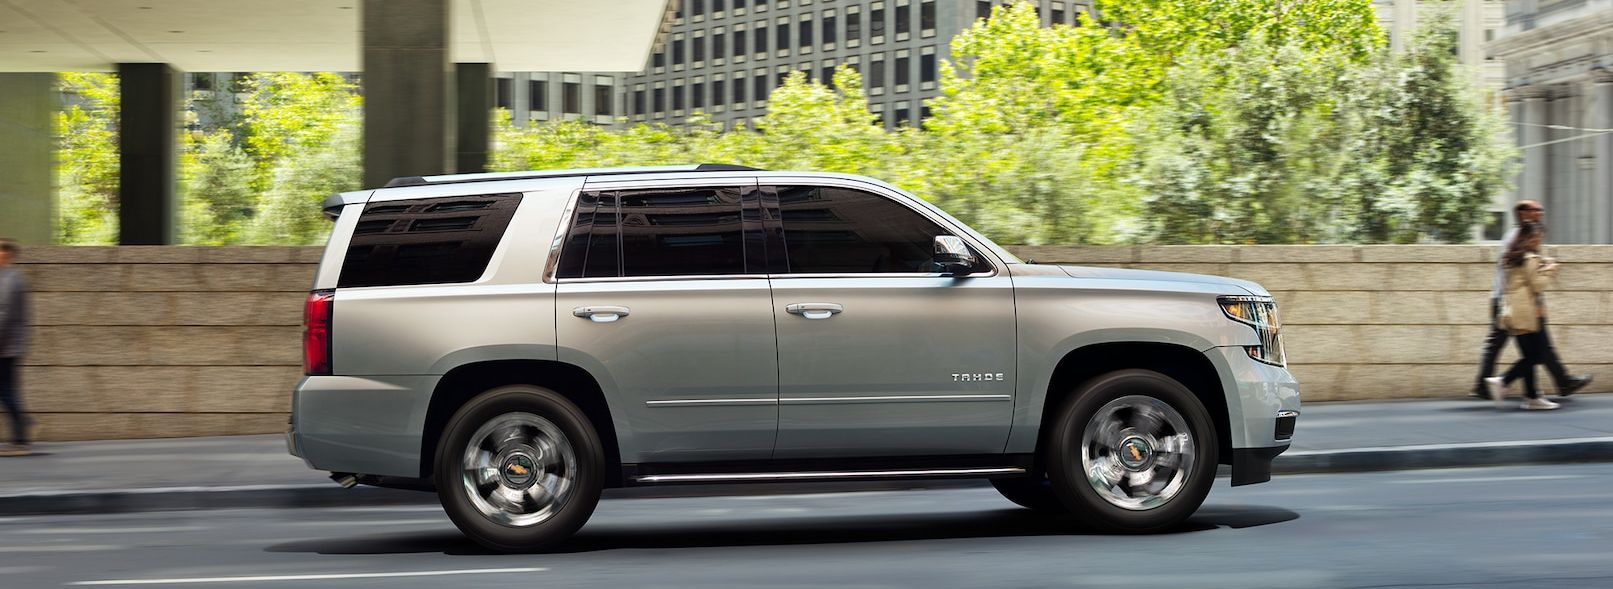 2019 Chevrolet Tahoe for Sale near Mobile, AL - Terry